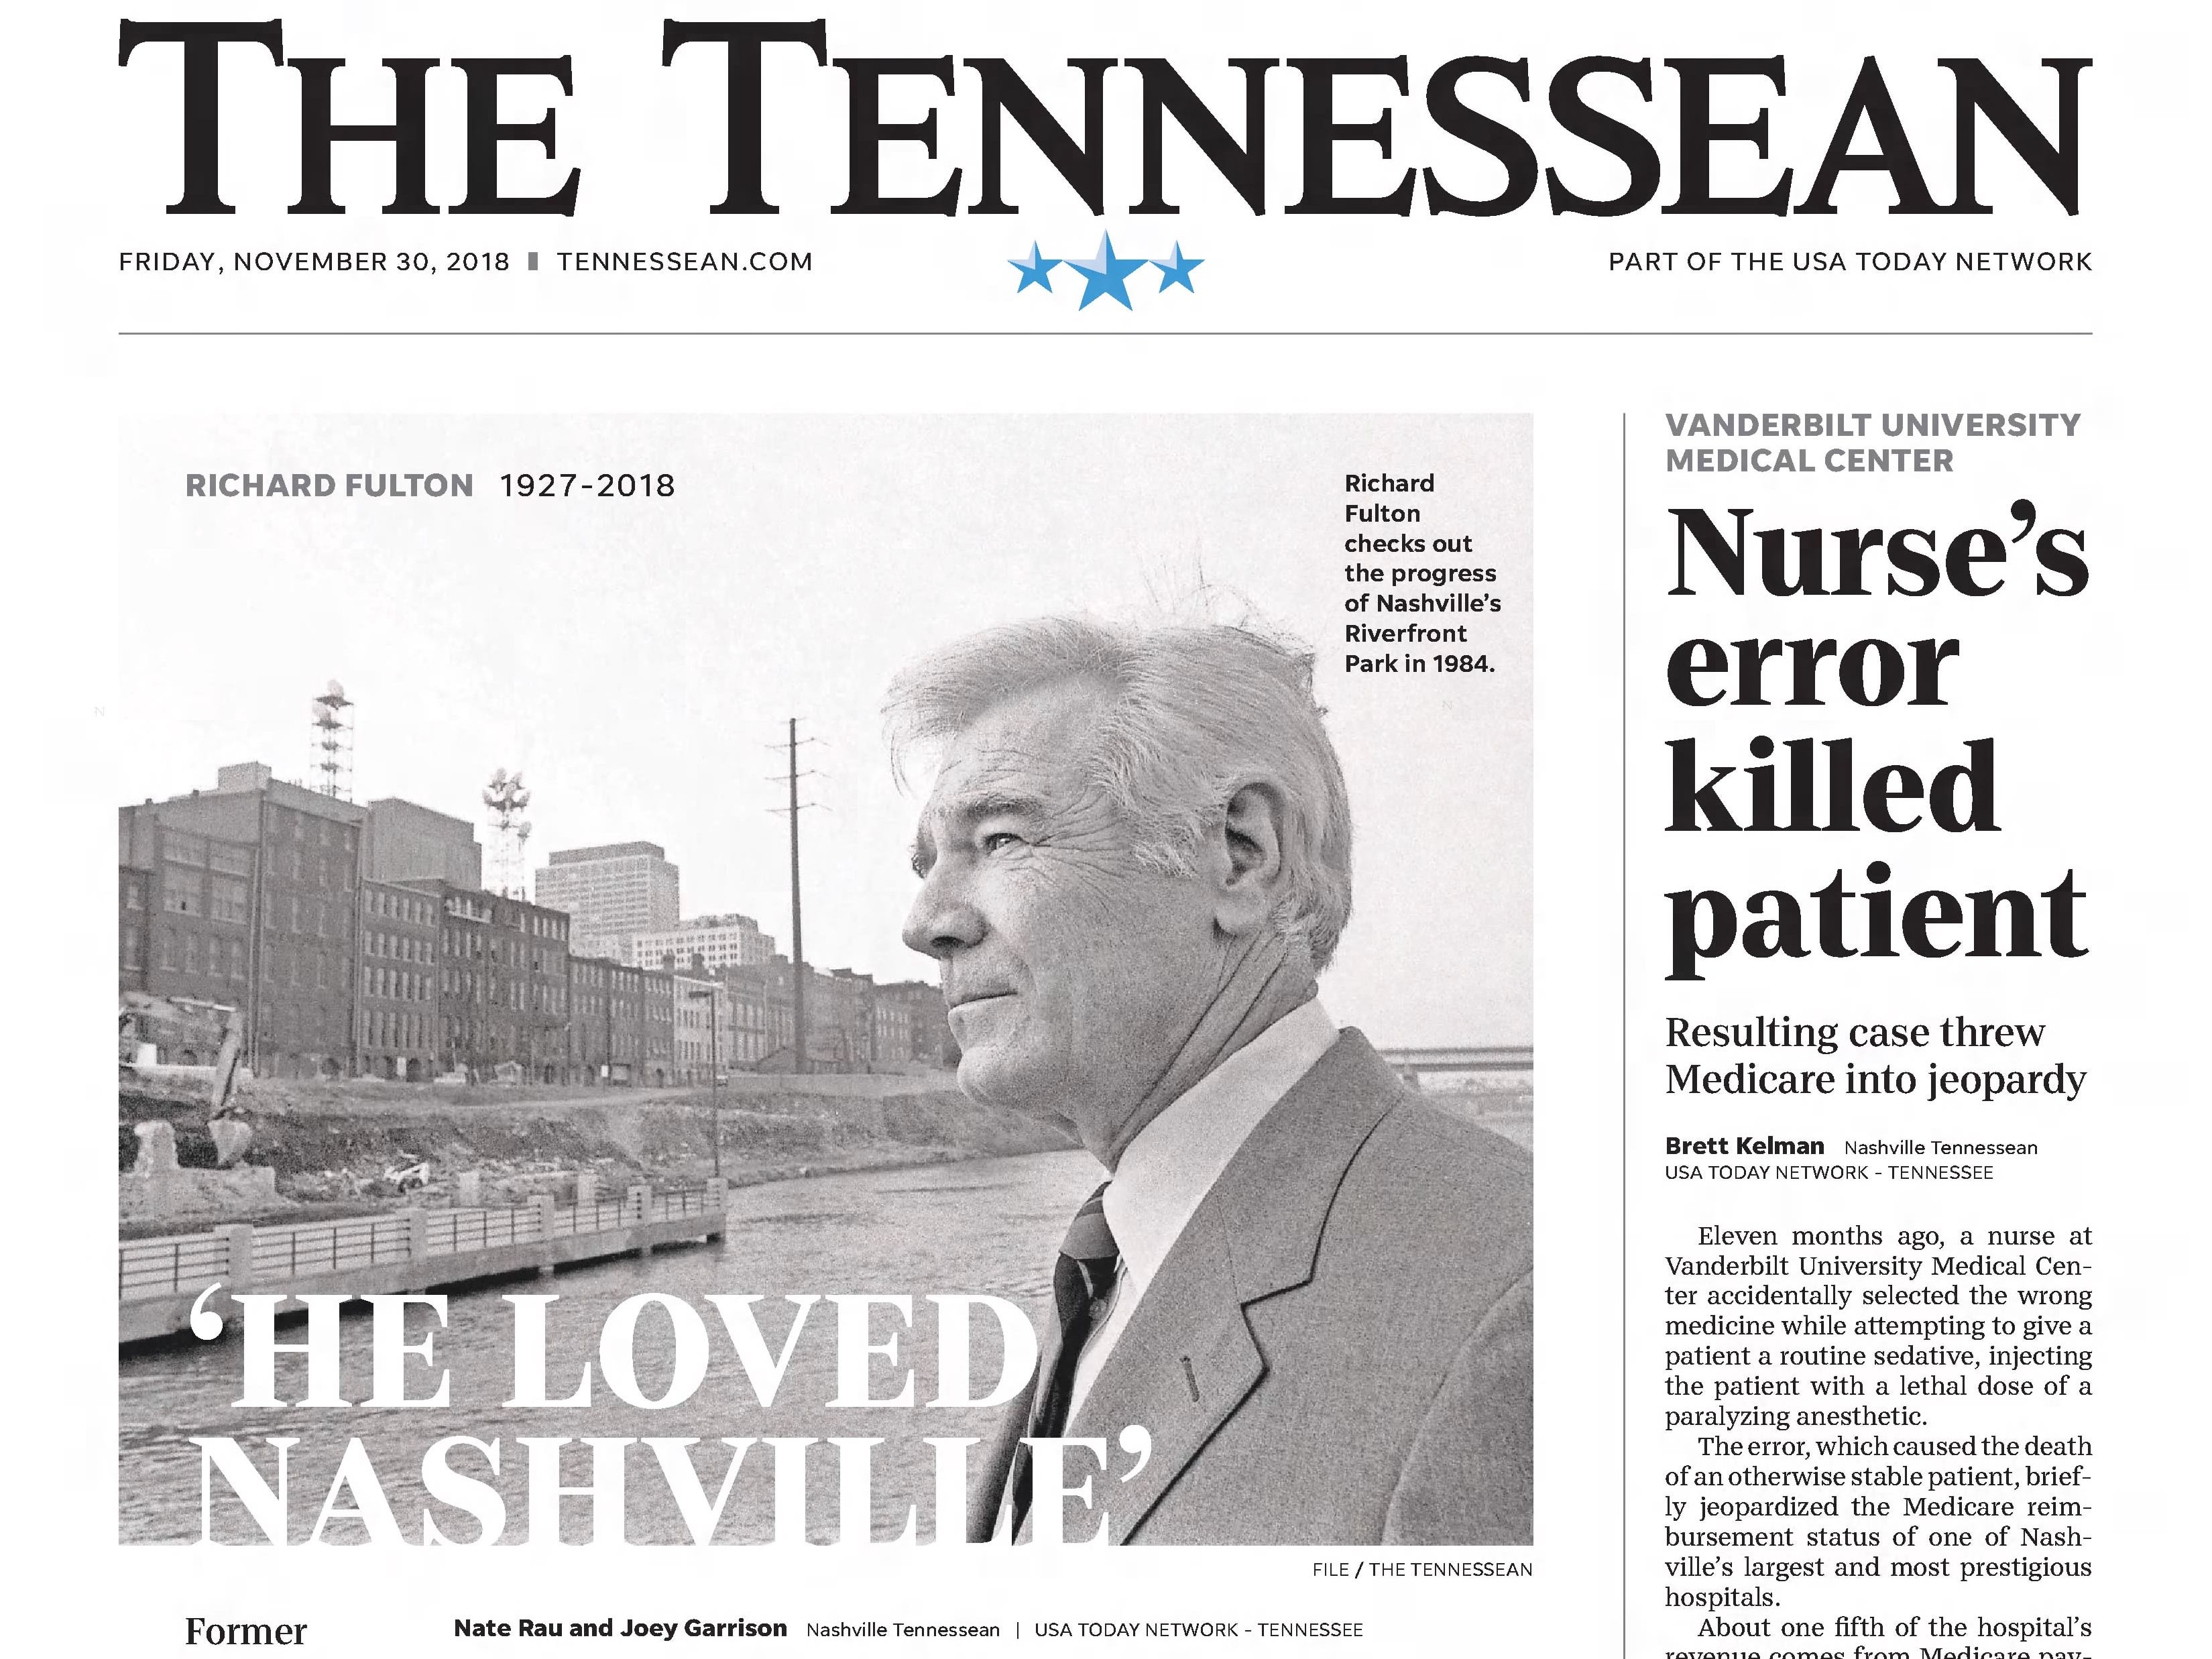 The front page of the Nov. 30, 2018 of The Tennessean for the coverage of the death of former Mayor Richard Fulton.